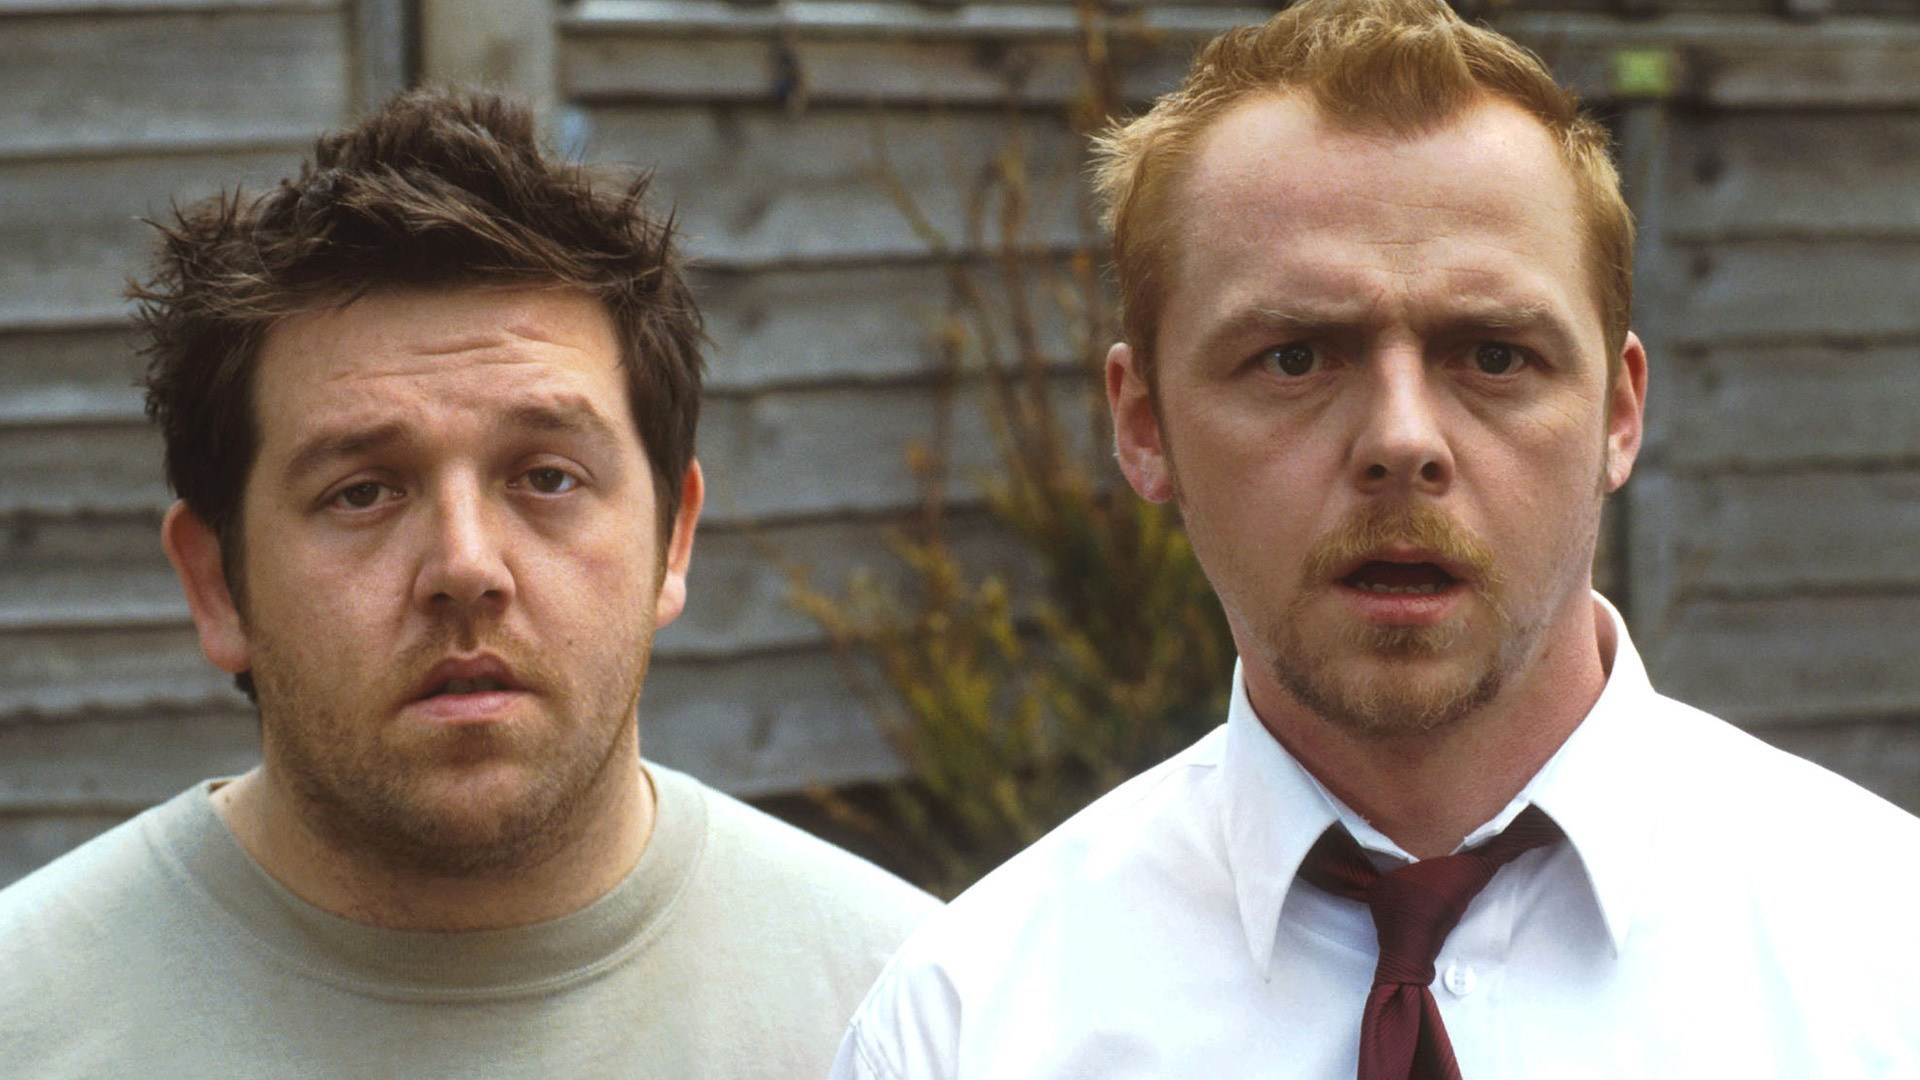 Simon Pegg and Nick Frost in Shaun of the Dead (2004)